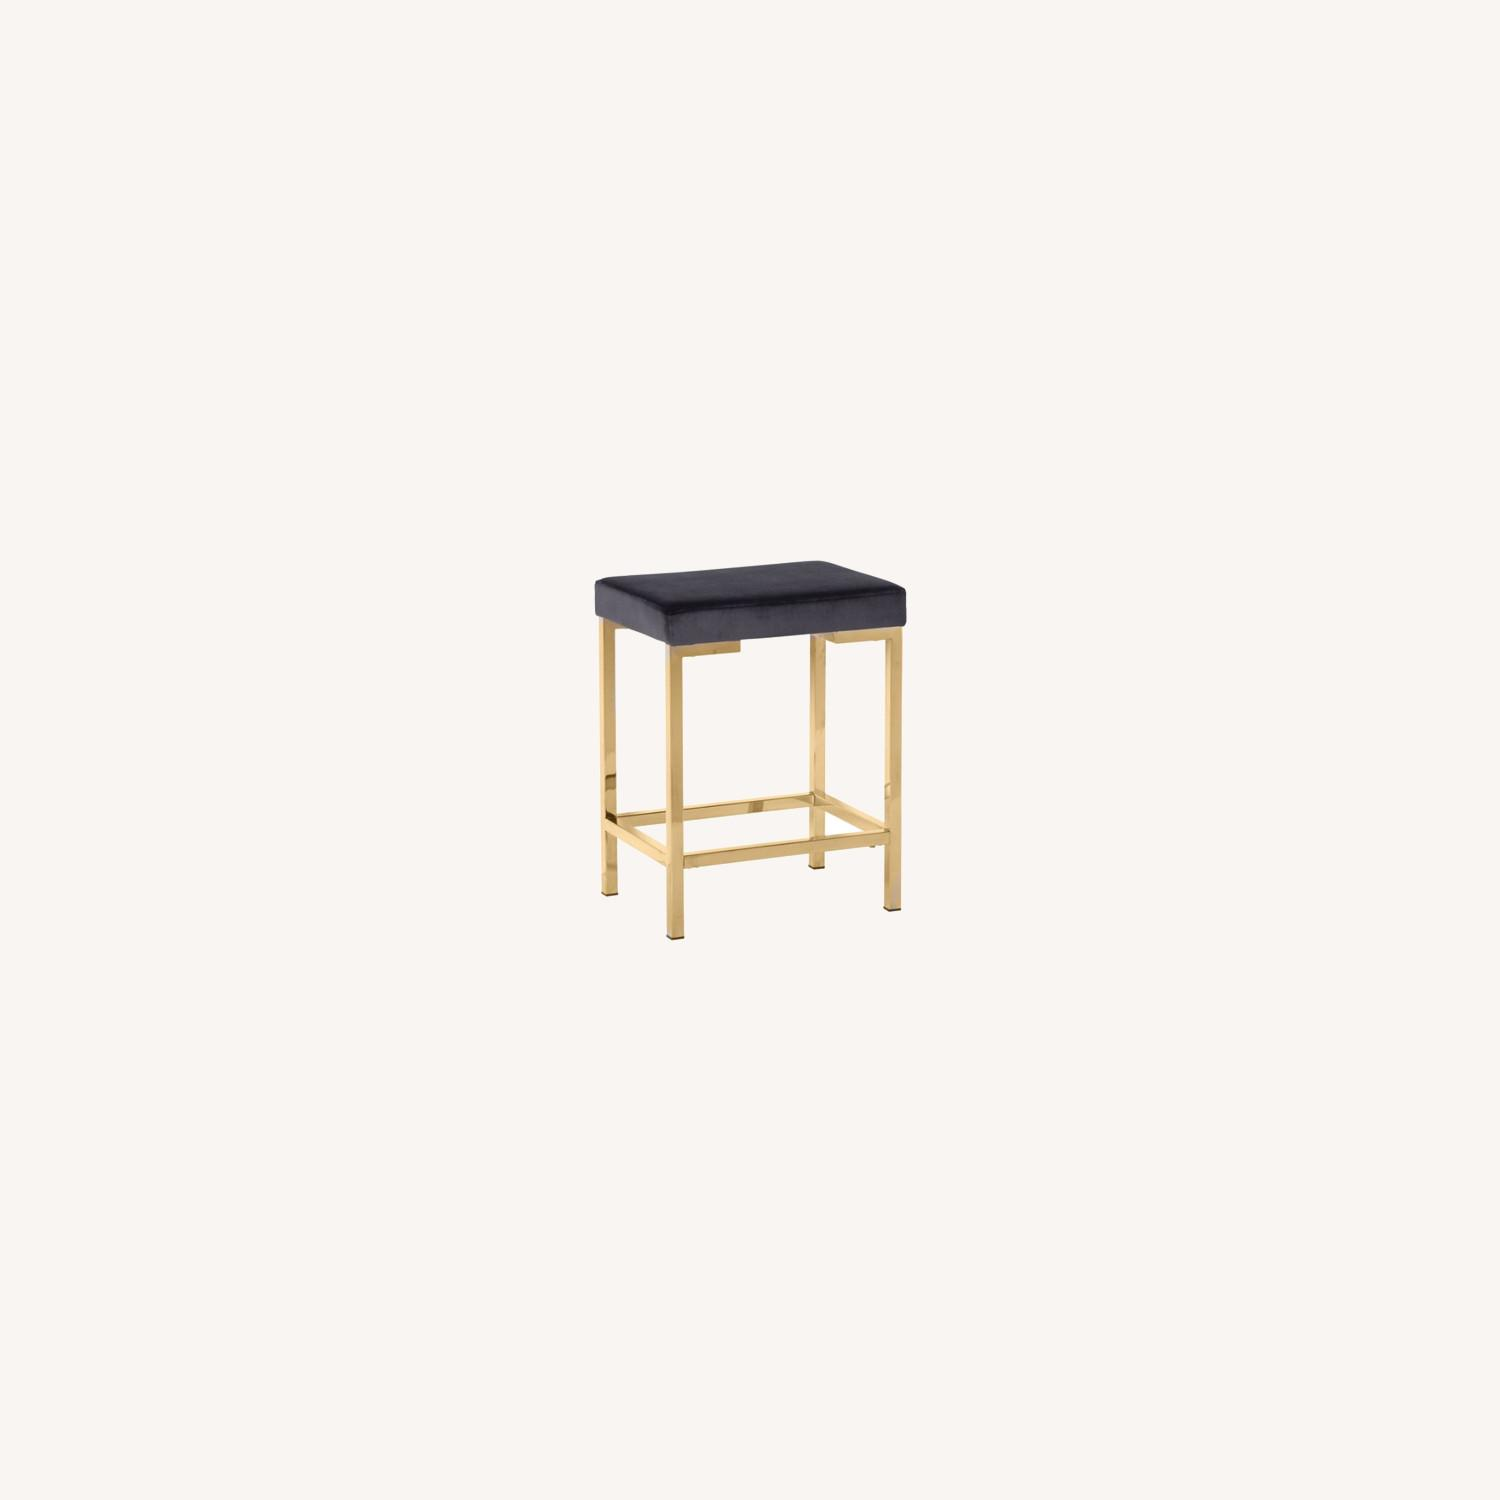 Minimalist Counter Height Stool In Charcoal Grey - image-3